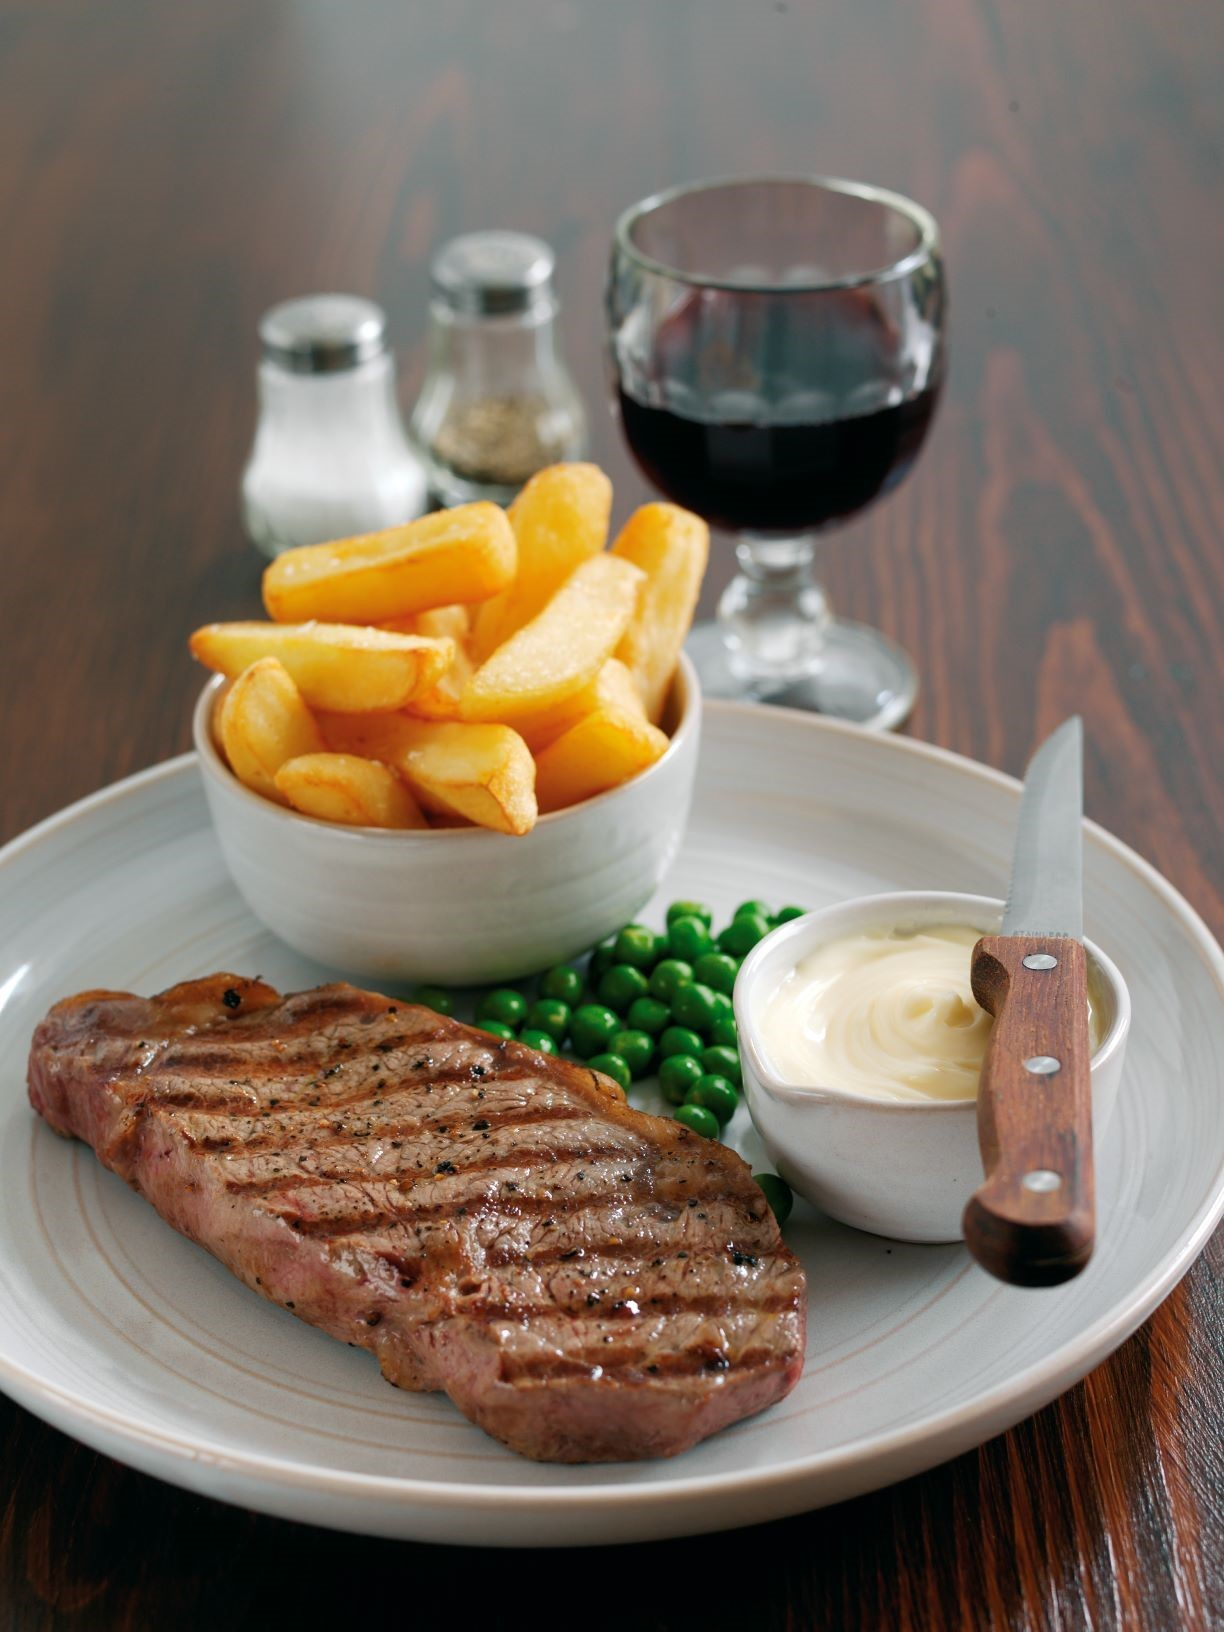 The Great British Public have been voting with their money - happily spending it on steak and chips